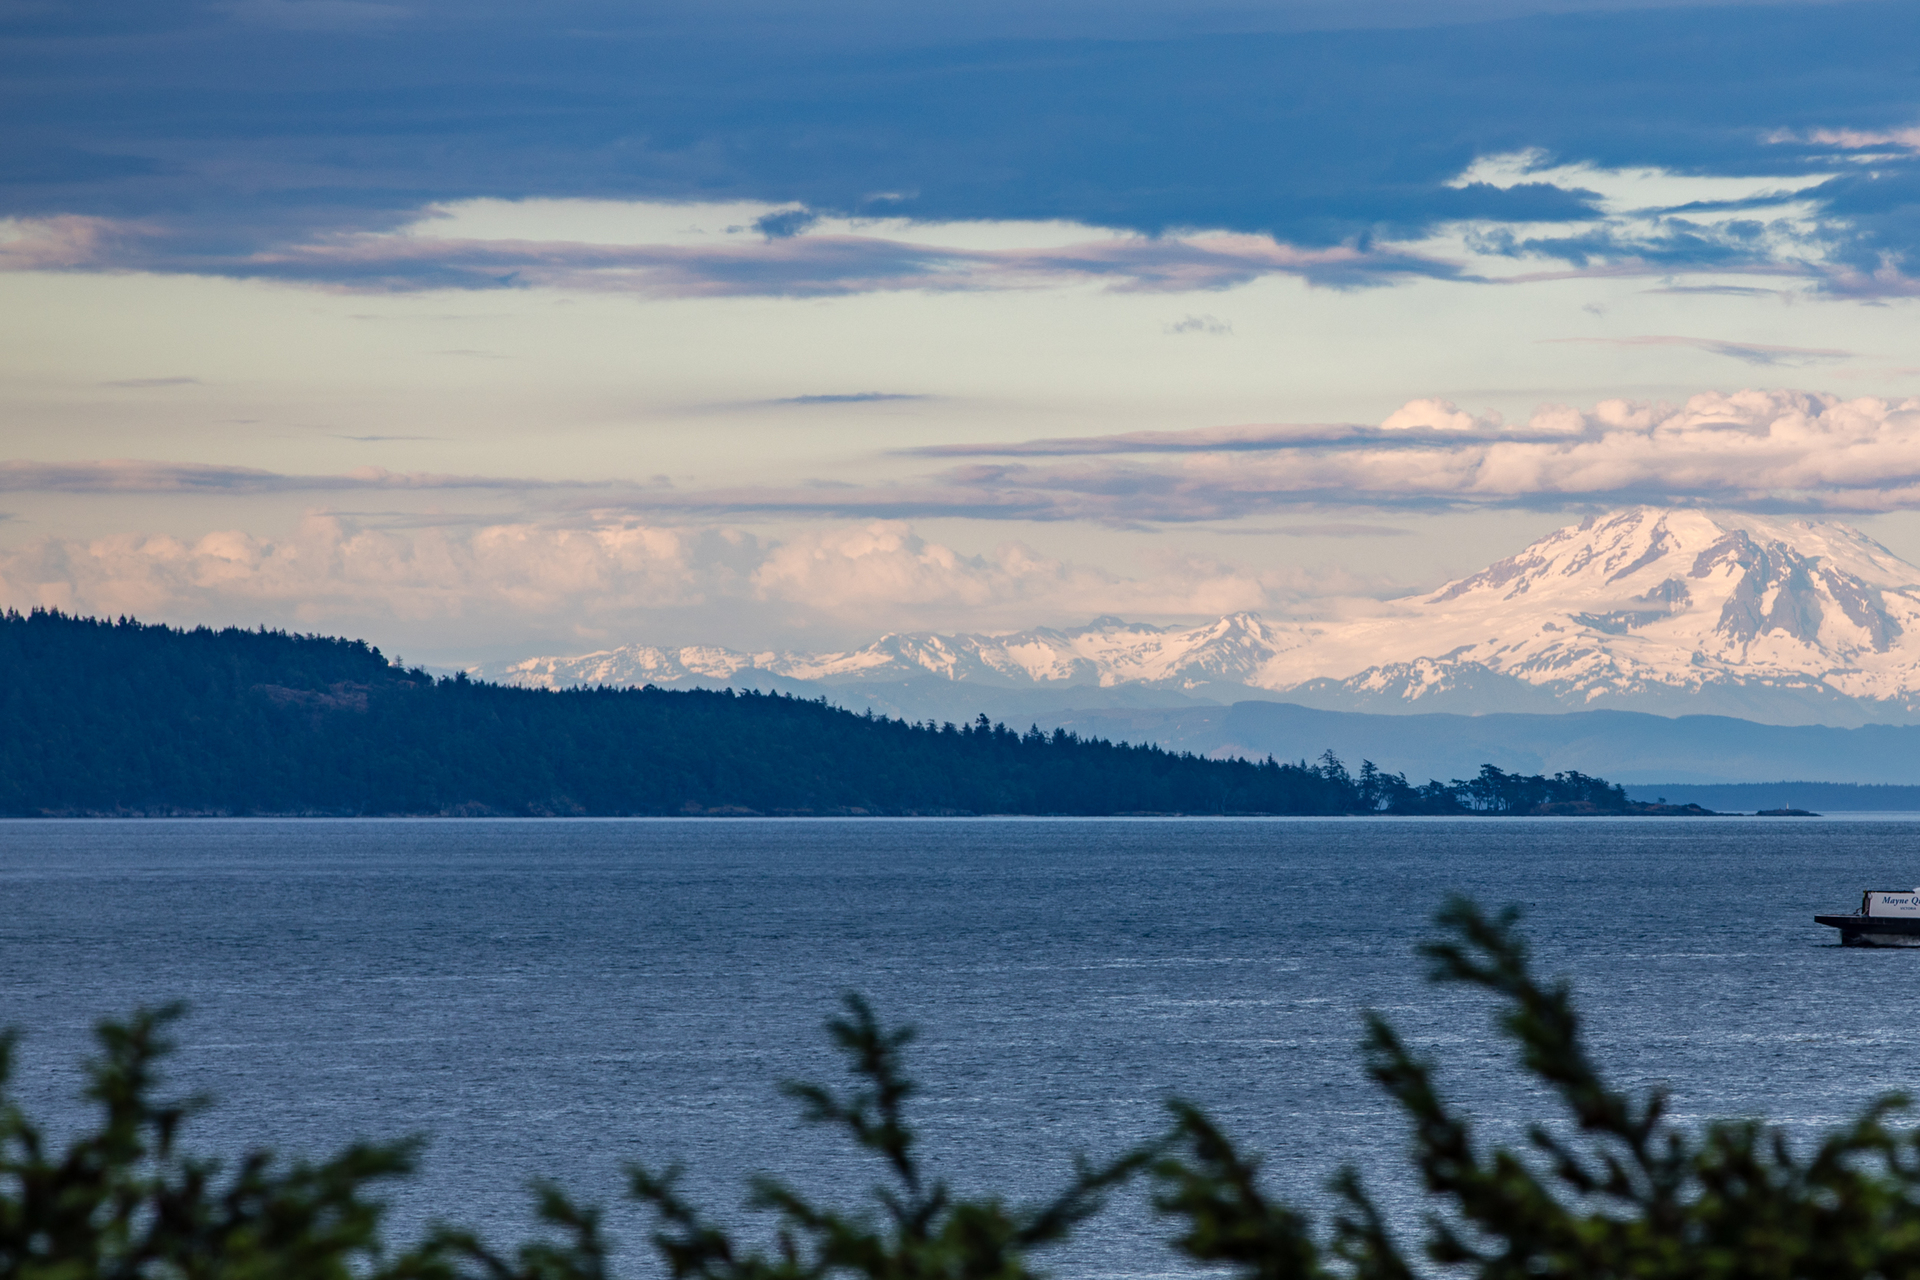 Mount Baker on the Horizon at 1850 Land's End Road, Lands End, North Saanich